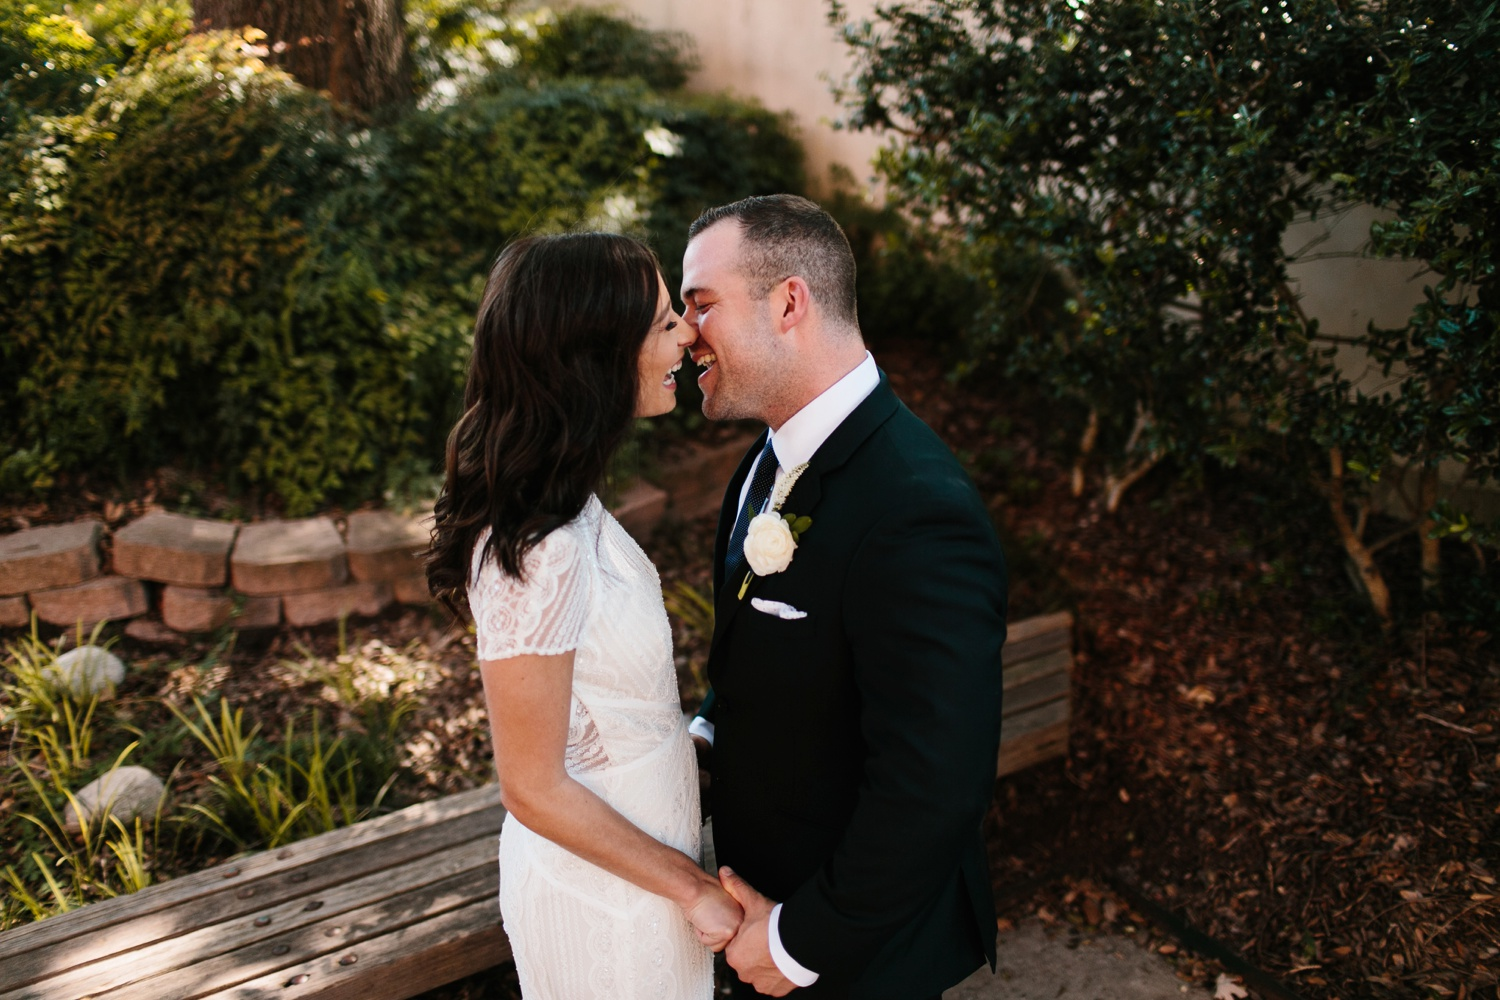 Kadee + Tyler | a raw, emotional wedding at the Filter Building on White Rock Lake in Dallas, TX by North Texas Wedding Photographer, Rachel Meagan Photography 071